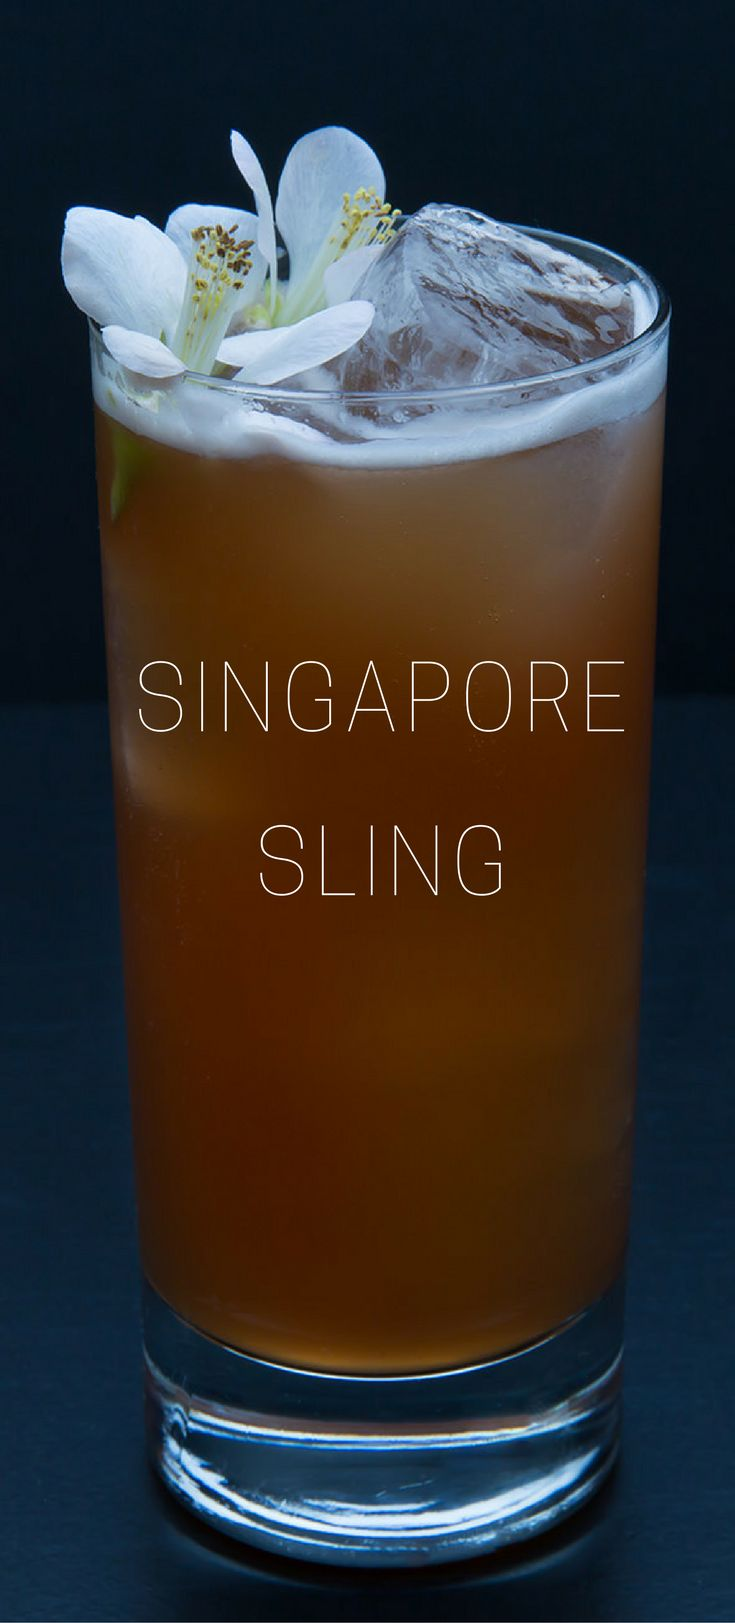 The Singapore Sling was first created in 1915 at the at the Long Bar in the Raffles Hotel in Singapore by Ngiam Tong Boon, a Hainanese bartender. #tiki #cocktail